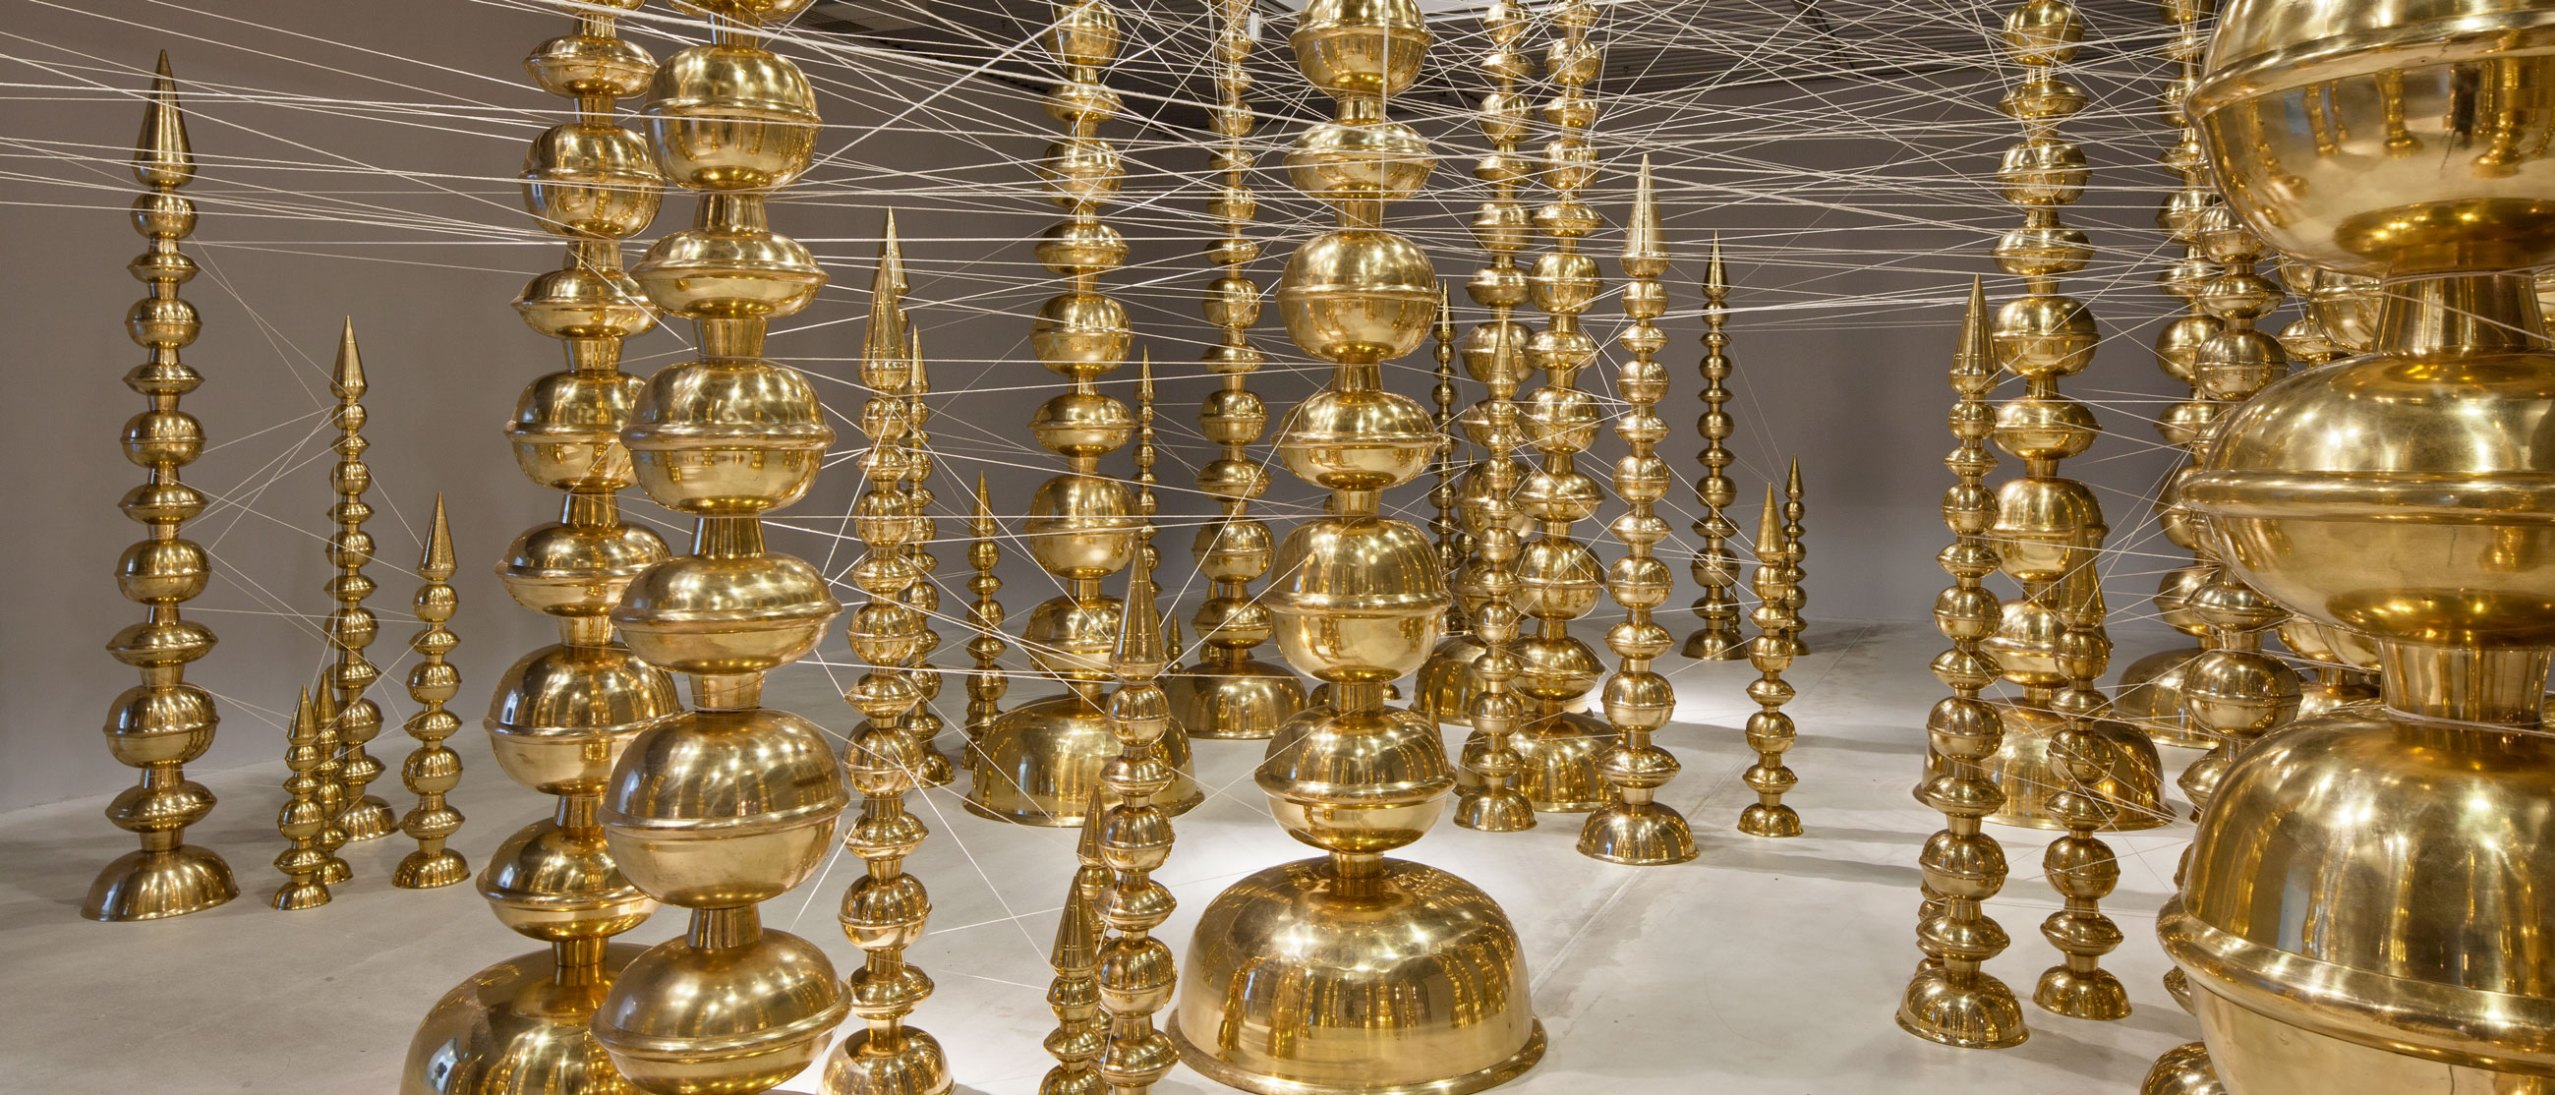 Terminal, installation: towers of brass containers connected by an intricate web of thread in the Sackler Pavilion.